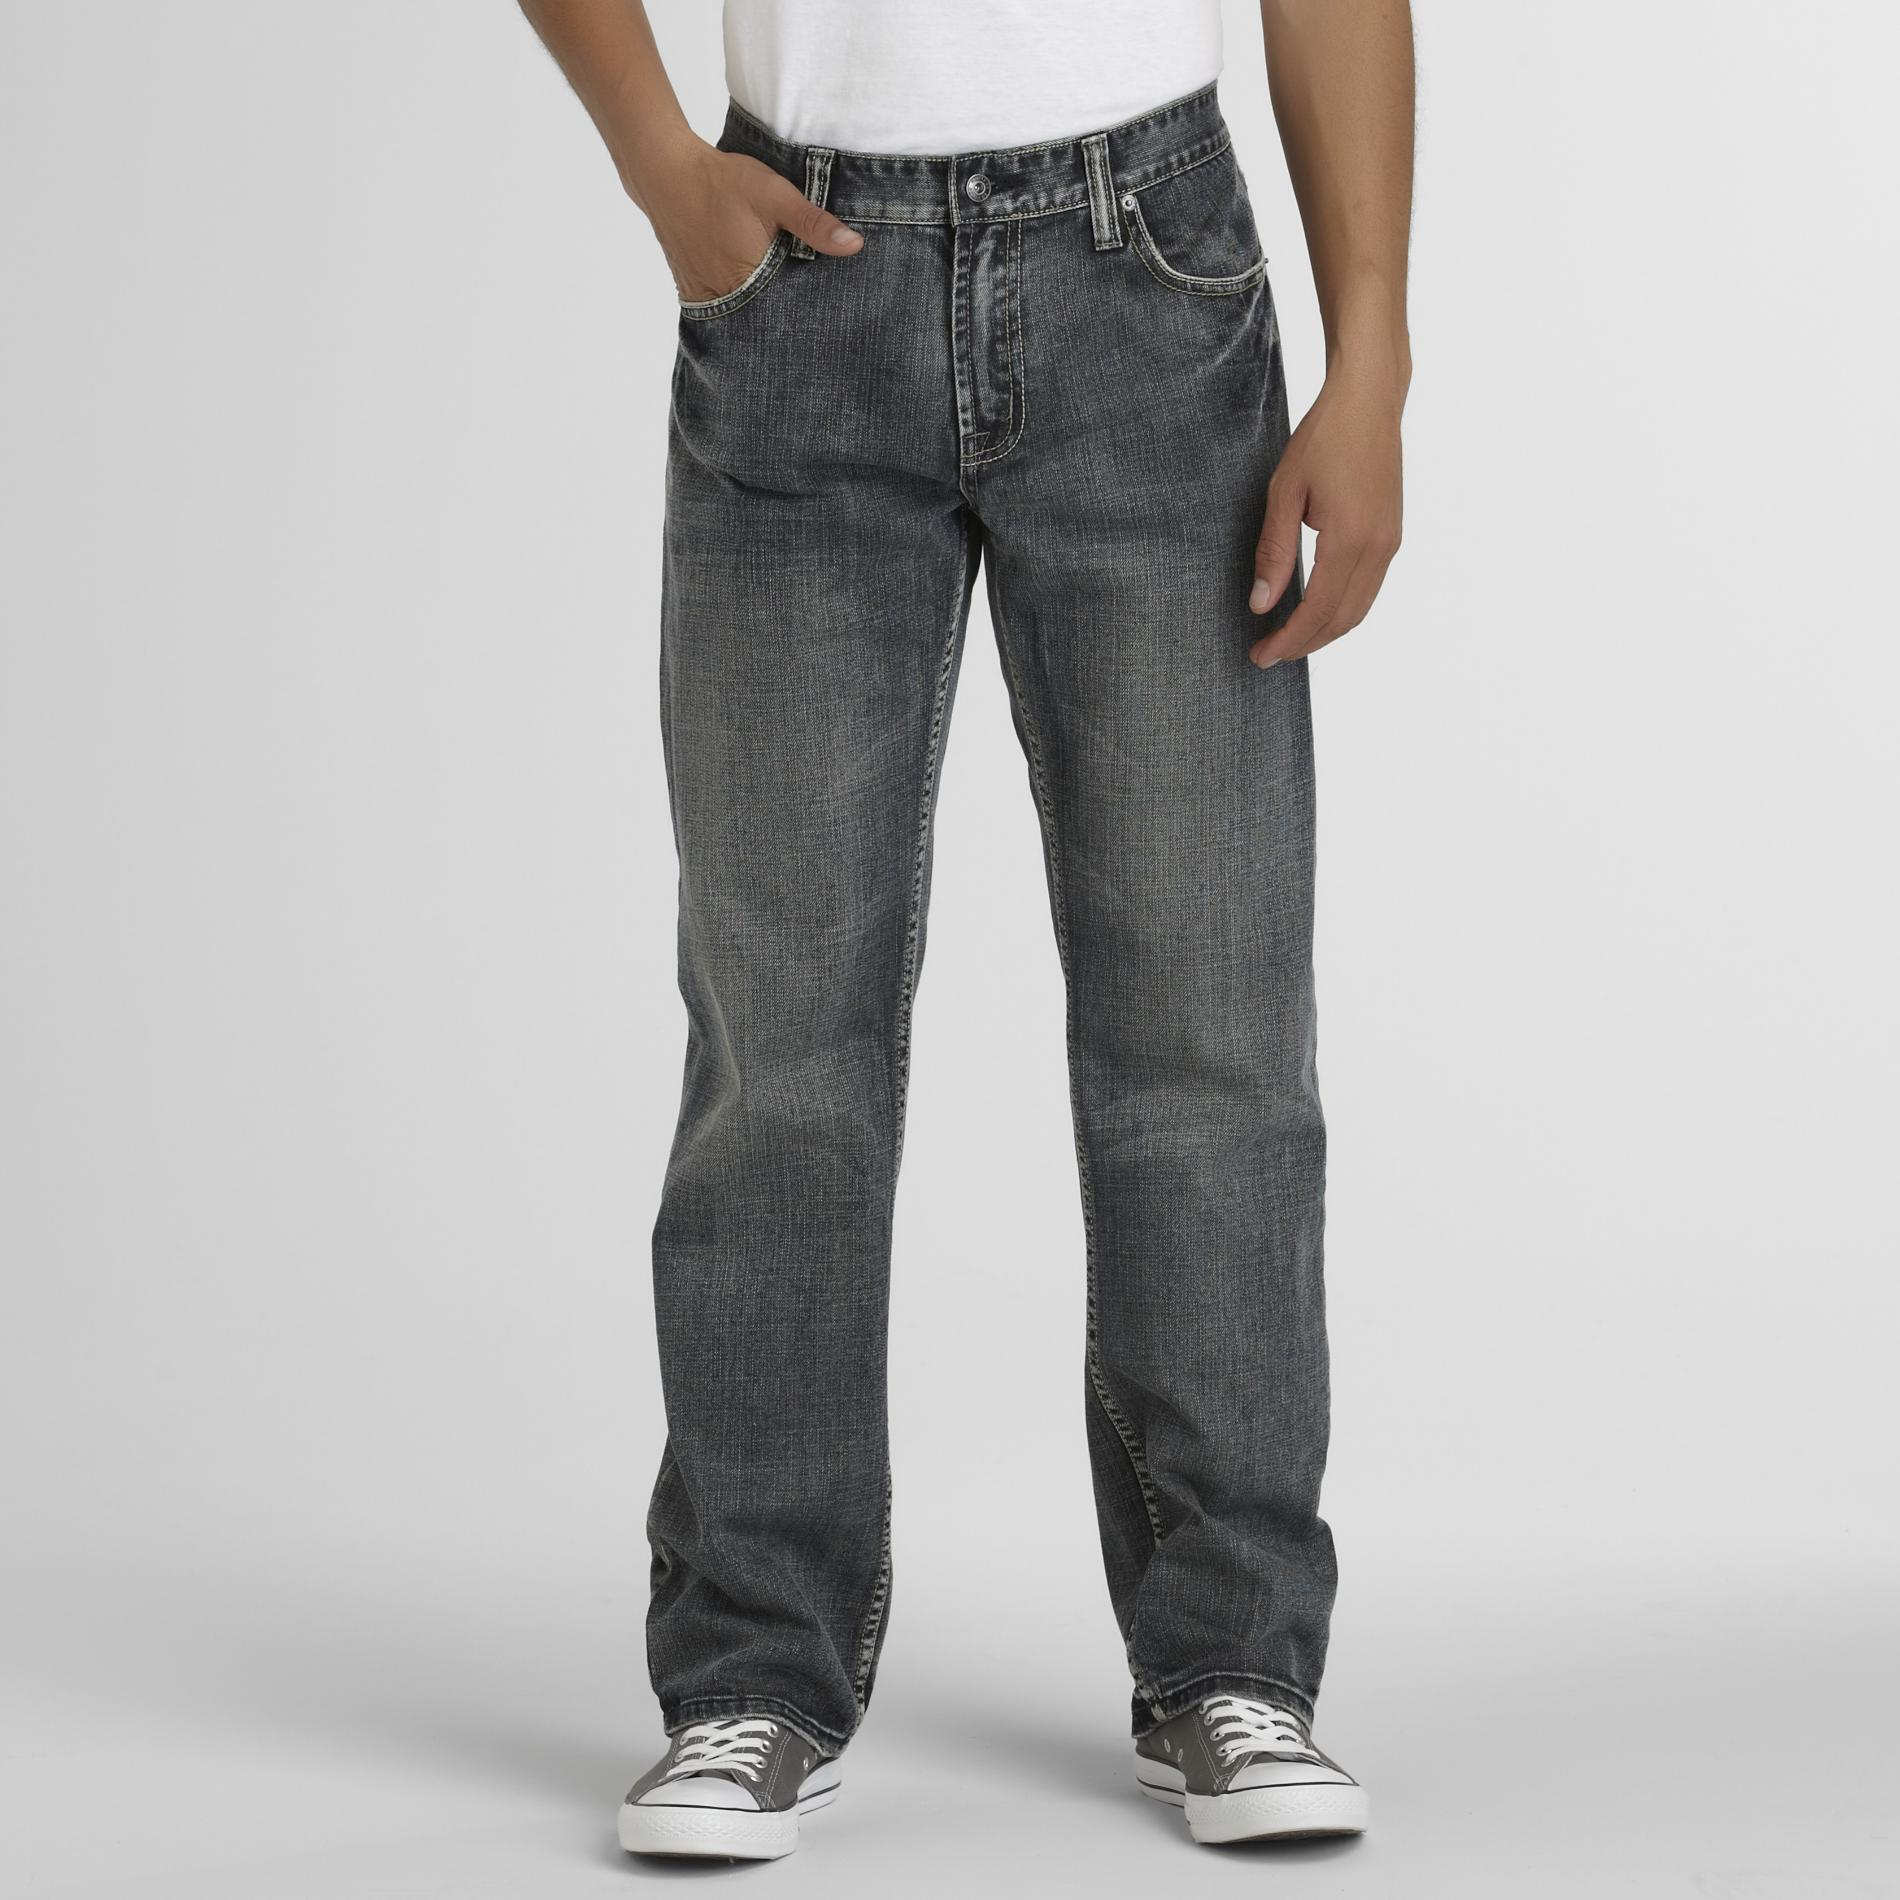 Route 66 Men's Straight-Leg Jeans at Kmart.com